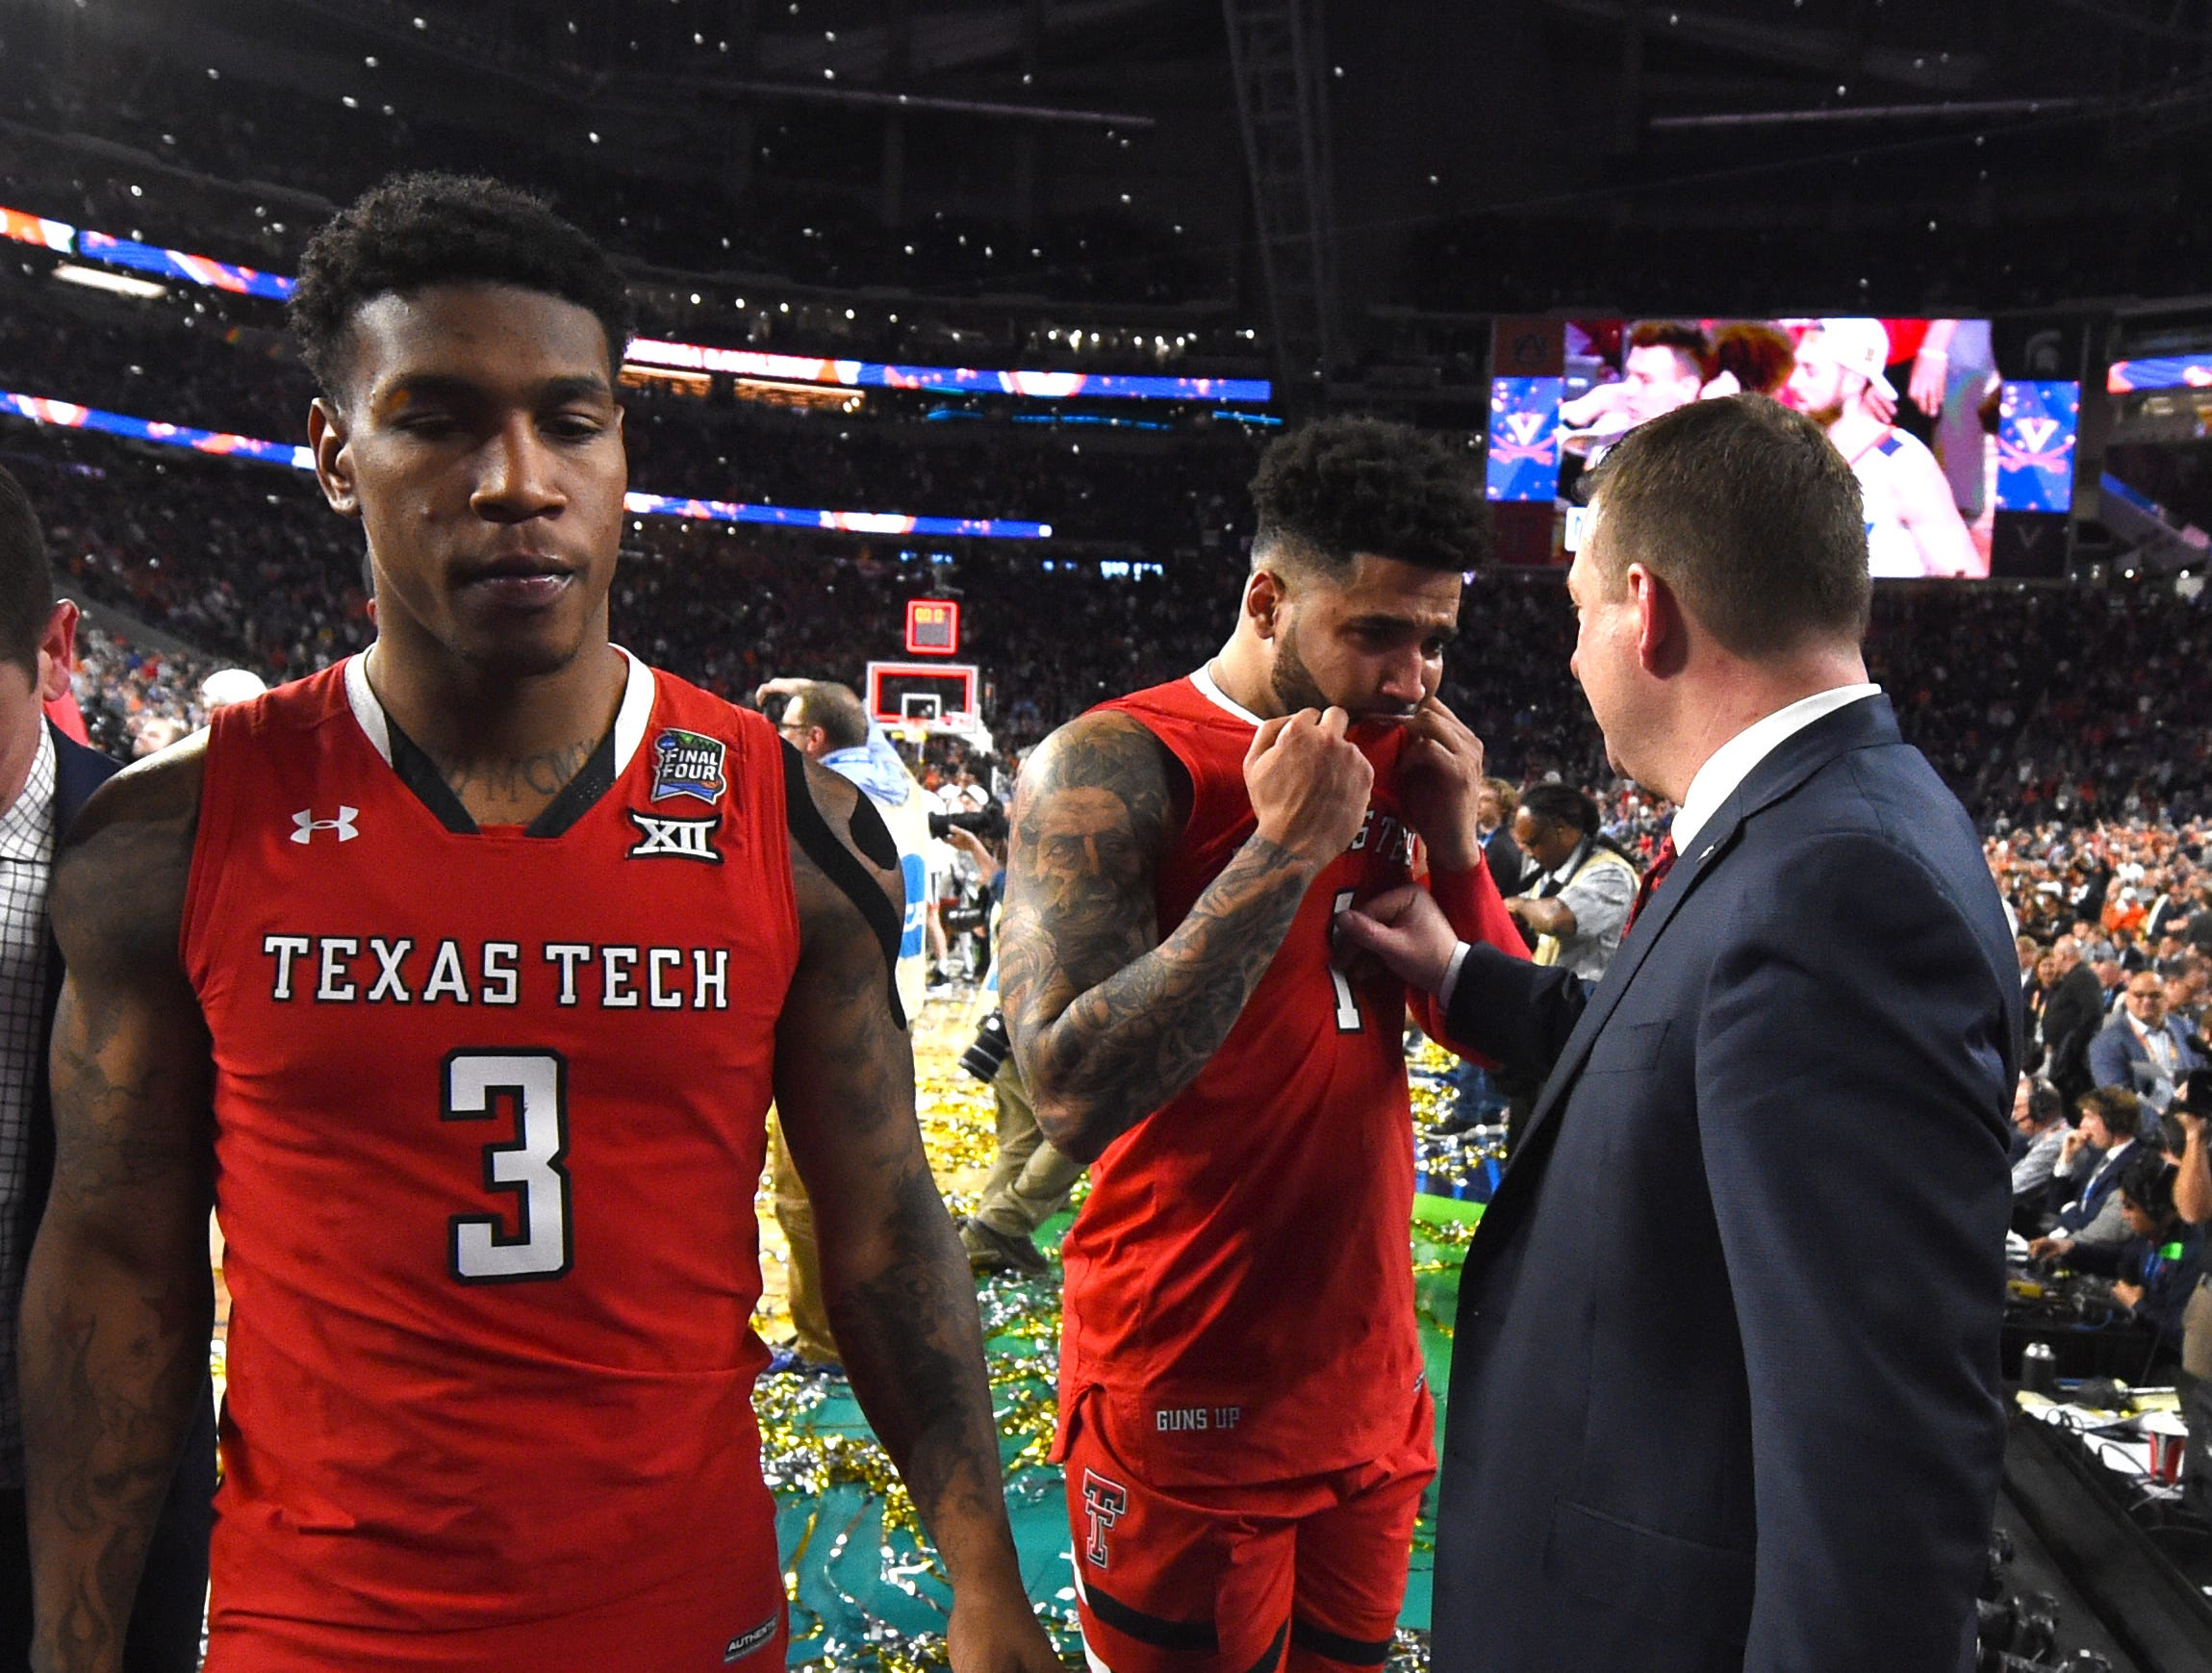 Apr 8, 2019; Minneapolis, MN, USA; Texas Tech Red Raiders head coach Chris Beard consoles guard Brandone Francis (1) after losing to the Virginia Cavaliers in the championship game of the 2019 men's Final Four at US Bank Stadium. Mandatory Credit: Robert Deutsch-USA TODAY Sports